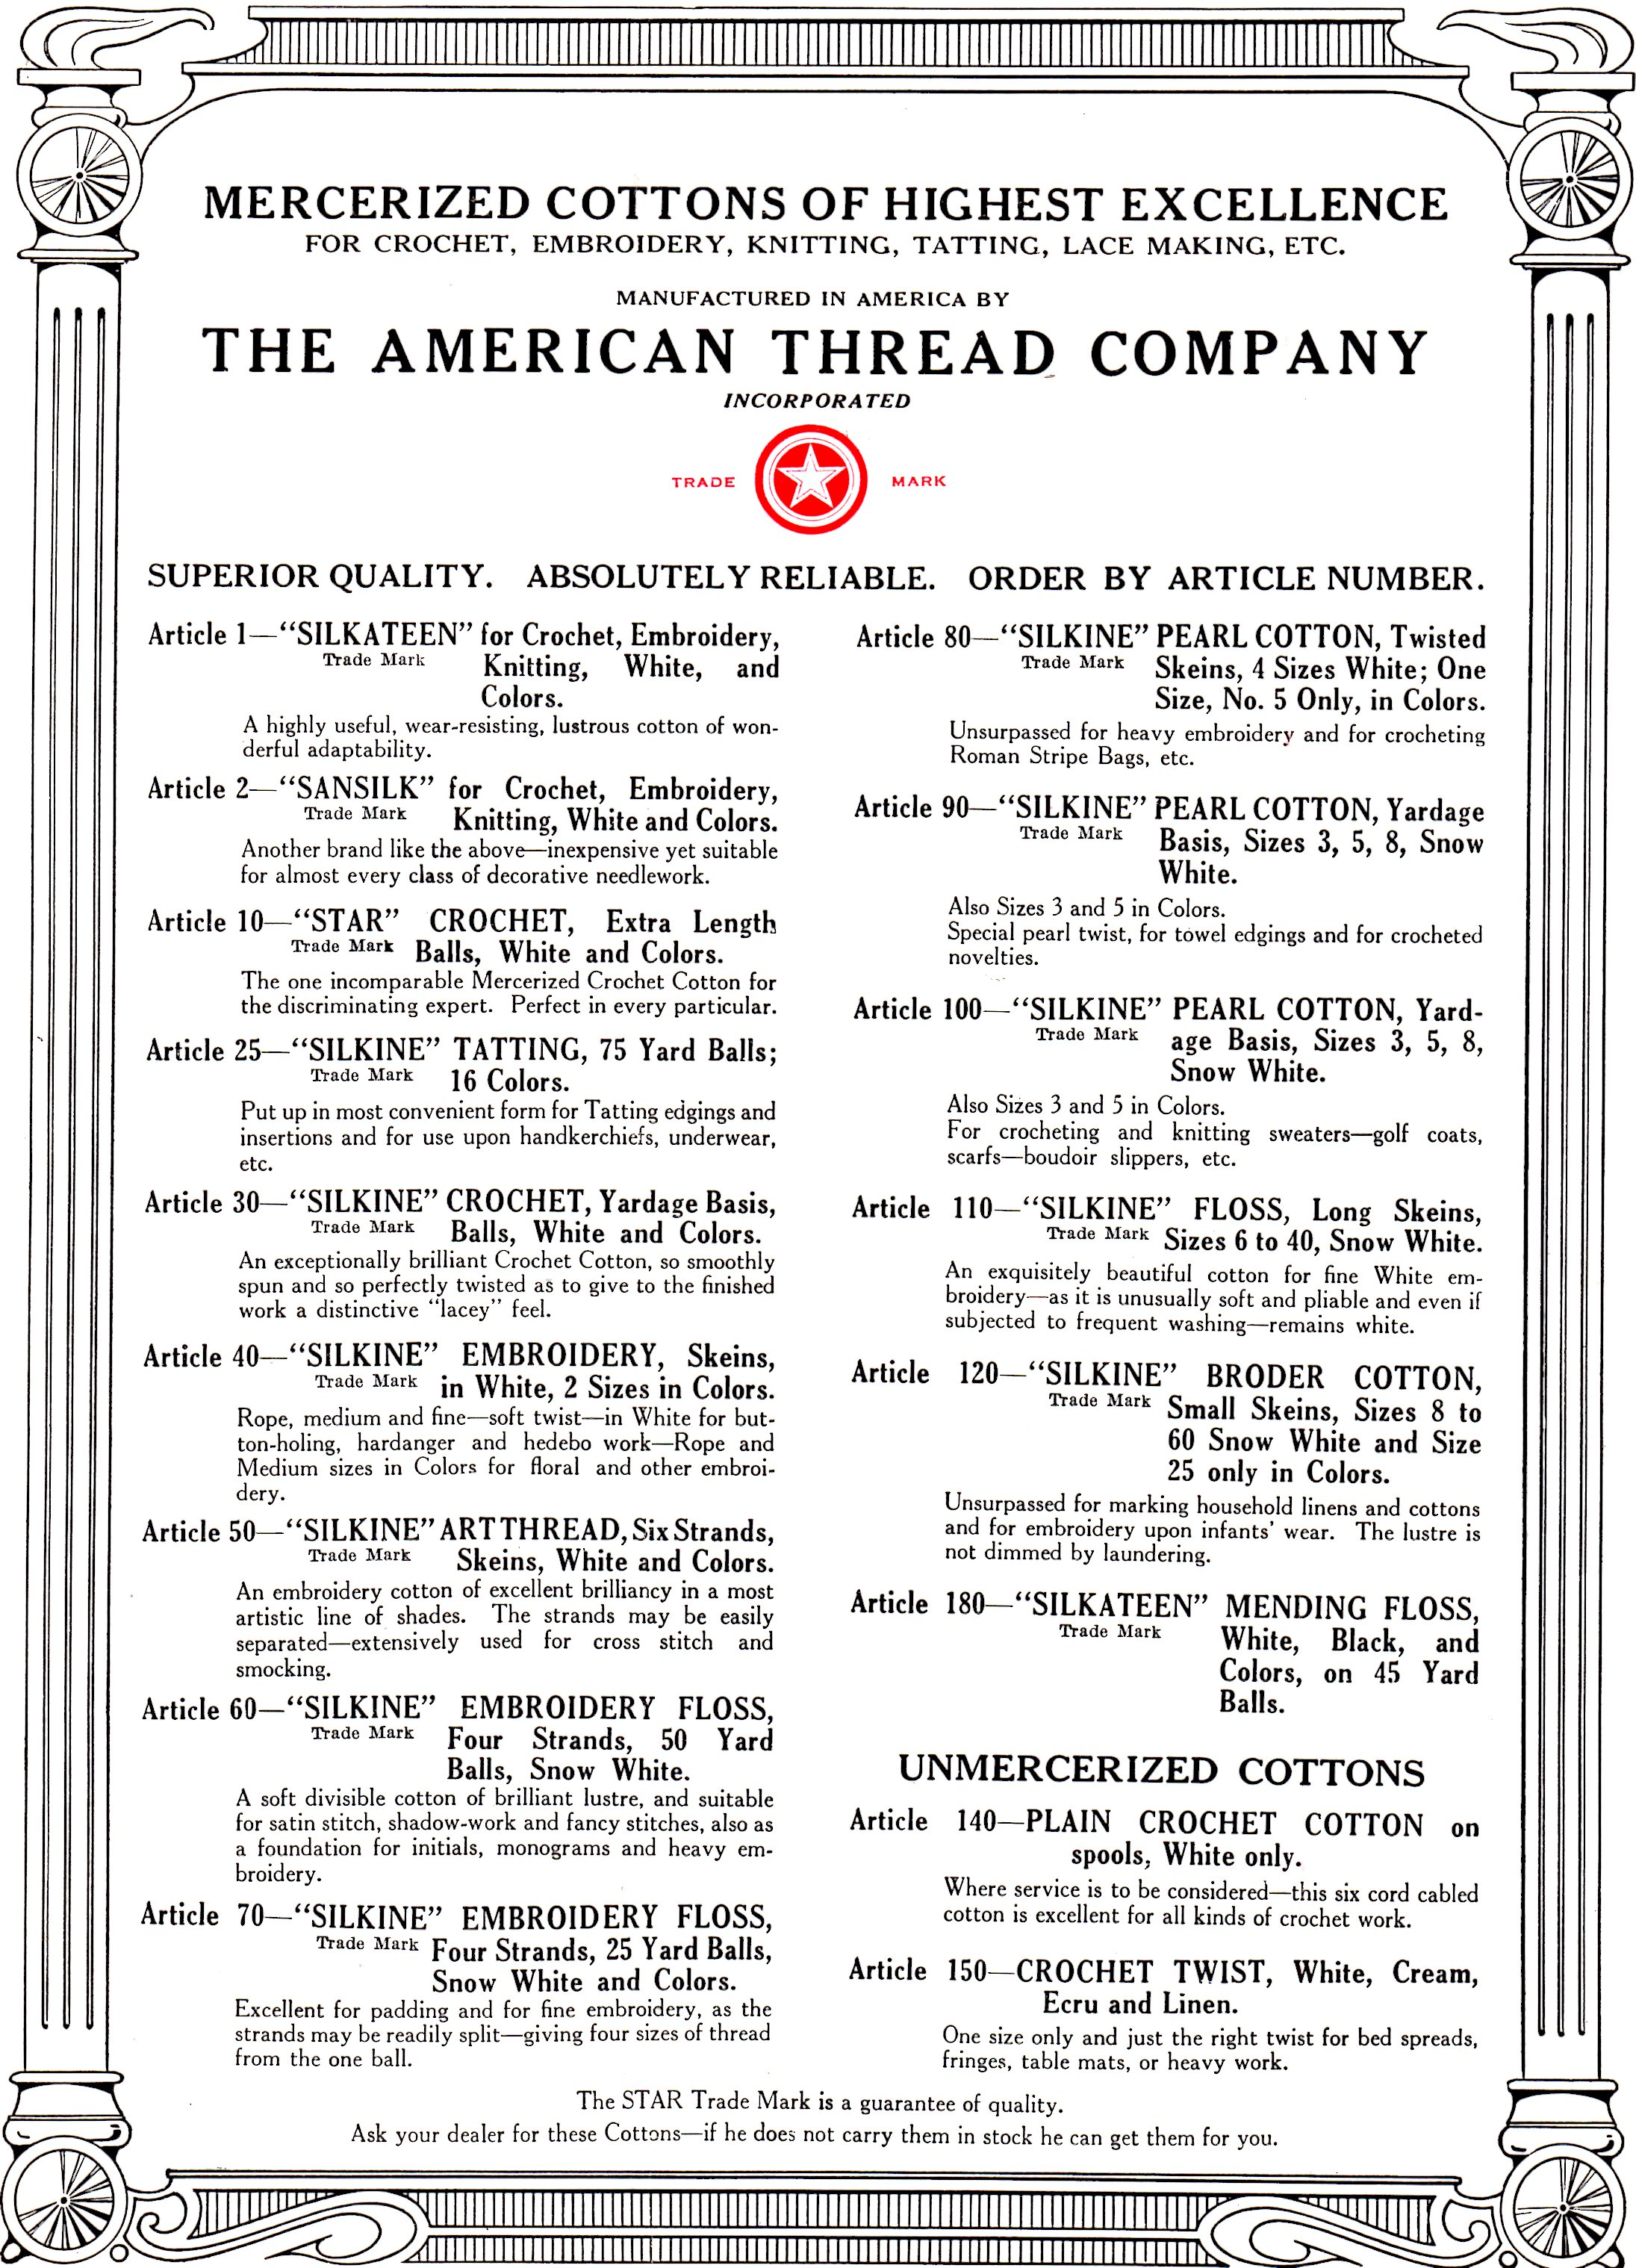 How to read vintage crochet patterns and discontinued yarns american thread company mercerized cottons page for vintage crochet patterns bankloansurffo Images